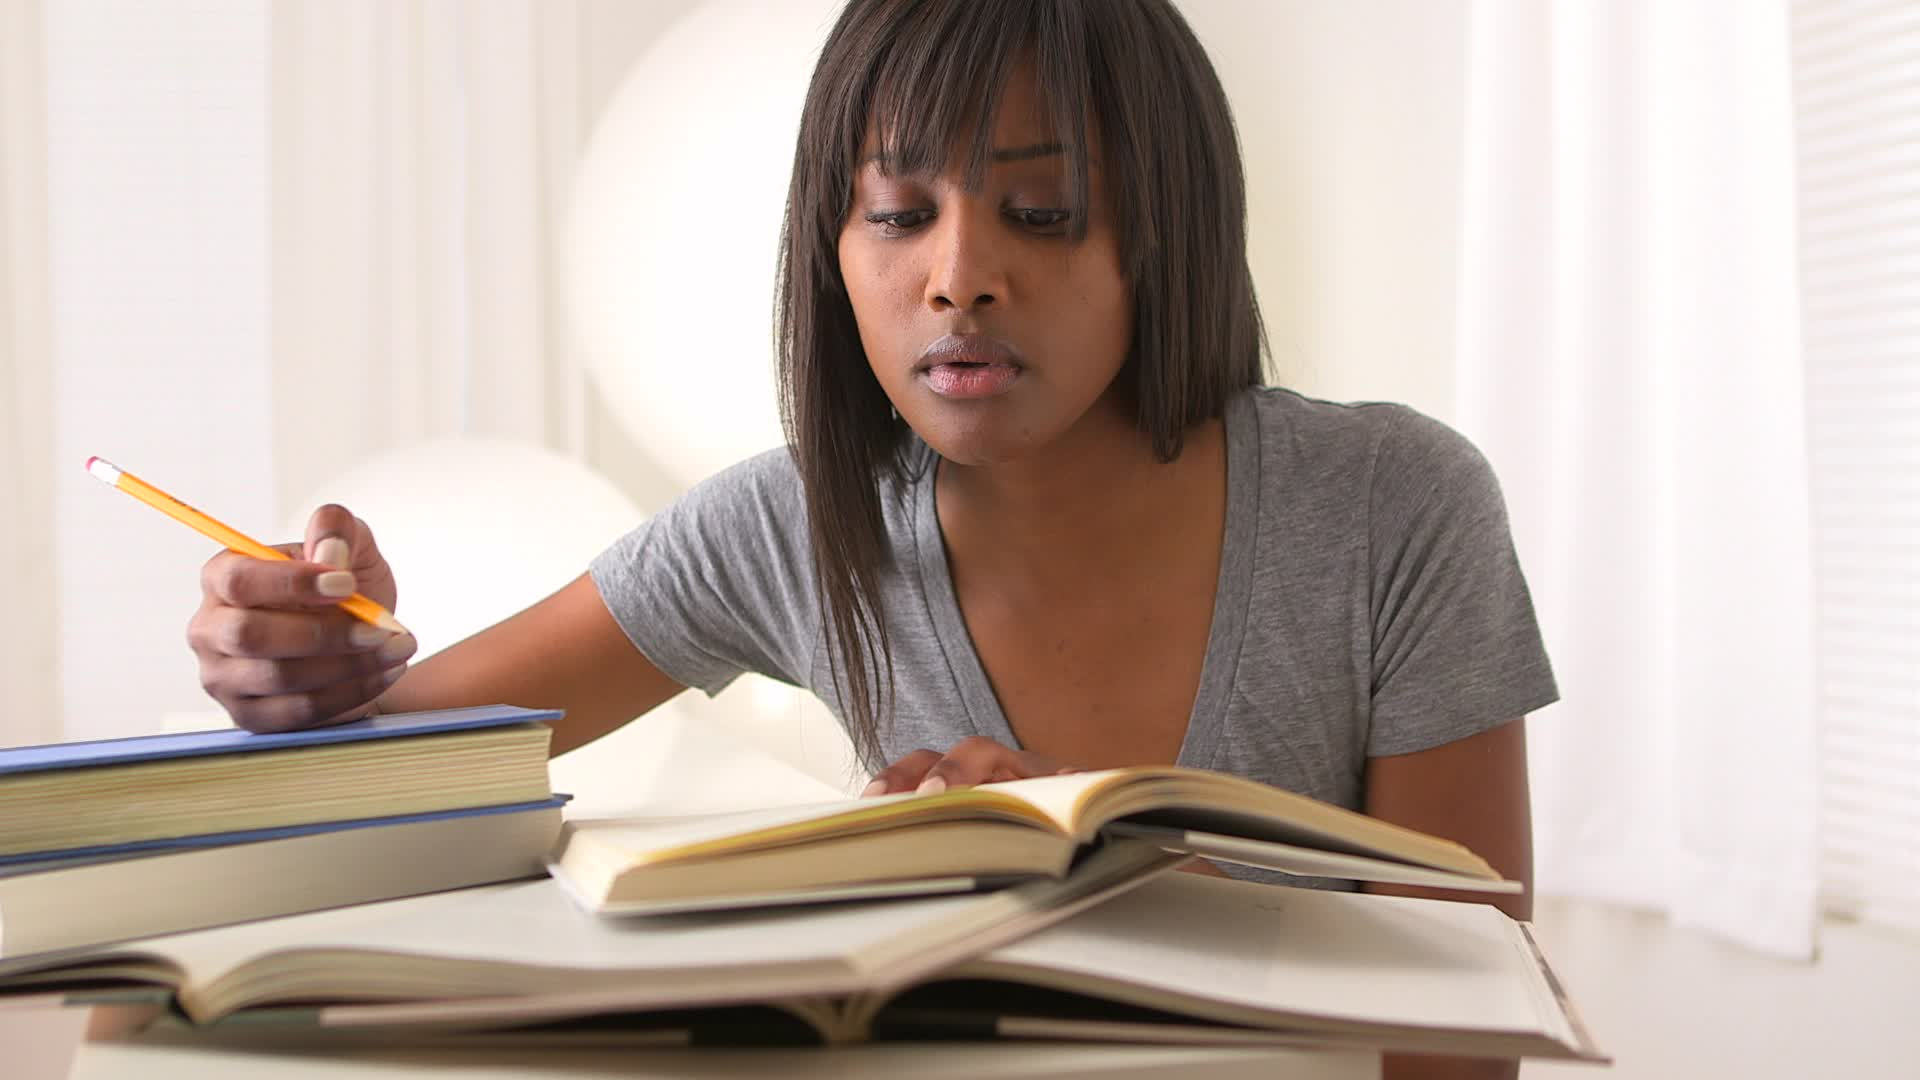 Student Homework Black Woman College Studying Footage 022541435 Prevstill